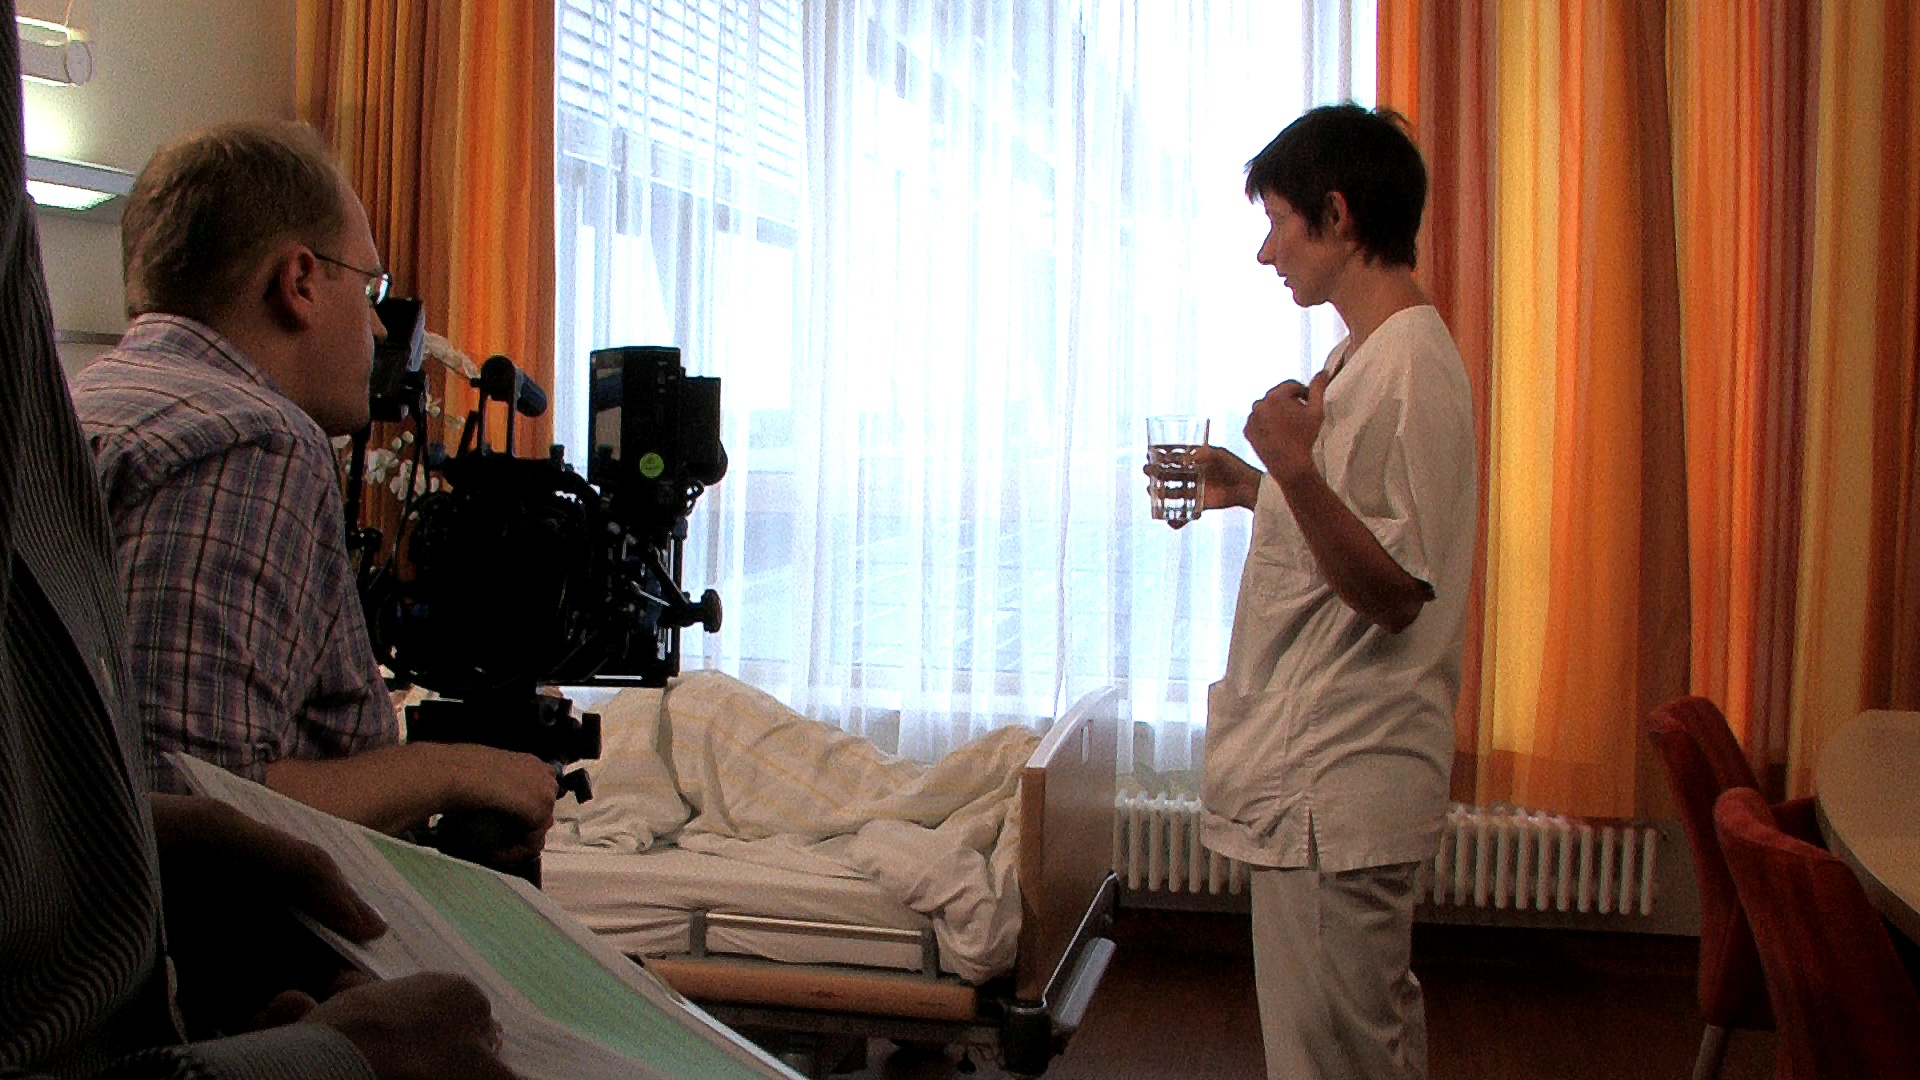 The director gives the nurse a stage direction for the current scene.